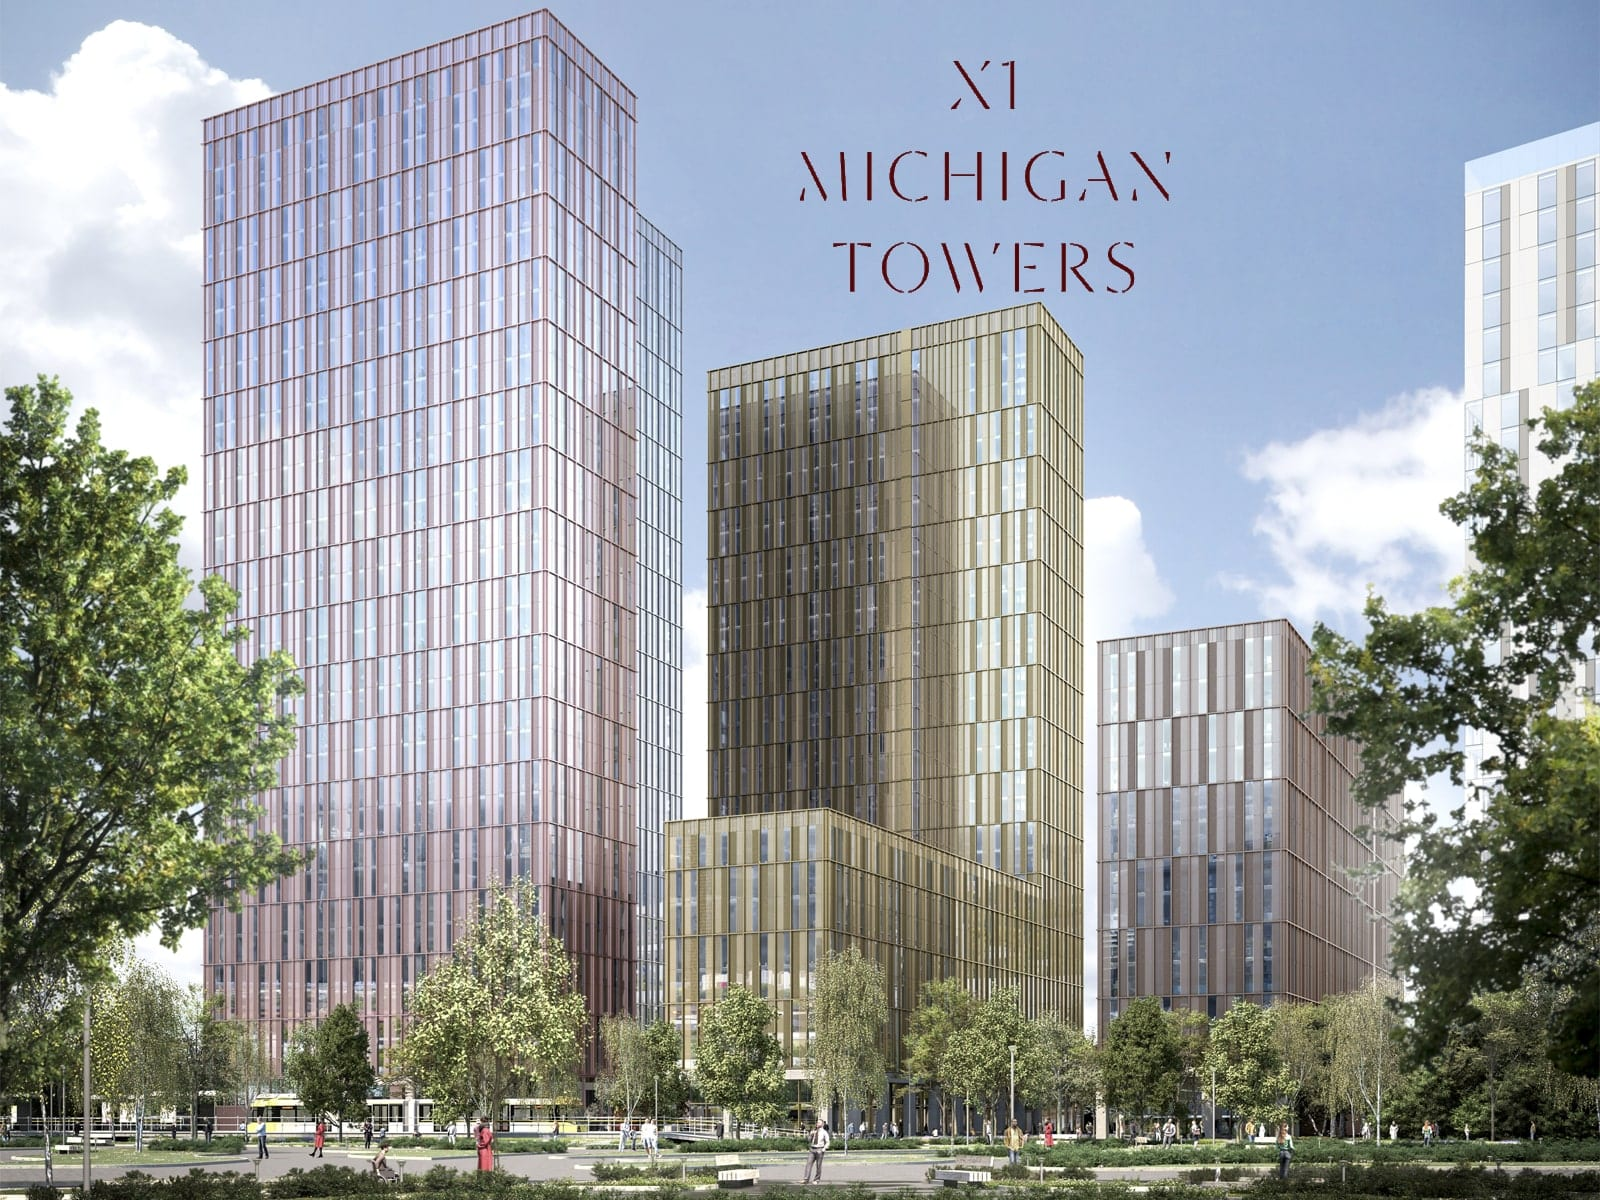 X1 Michigan Towers